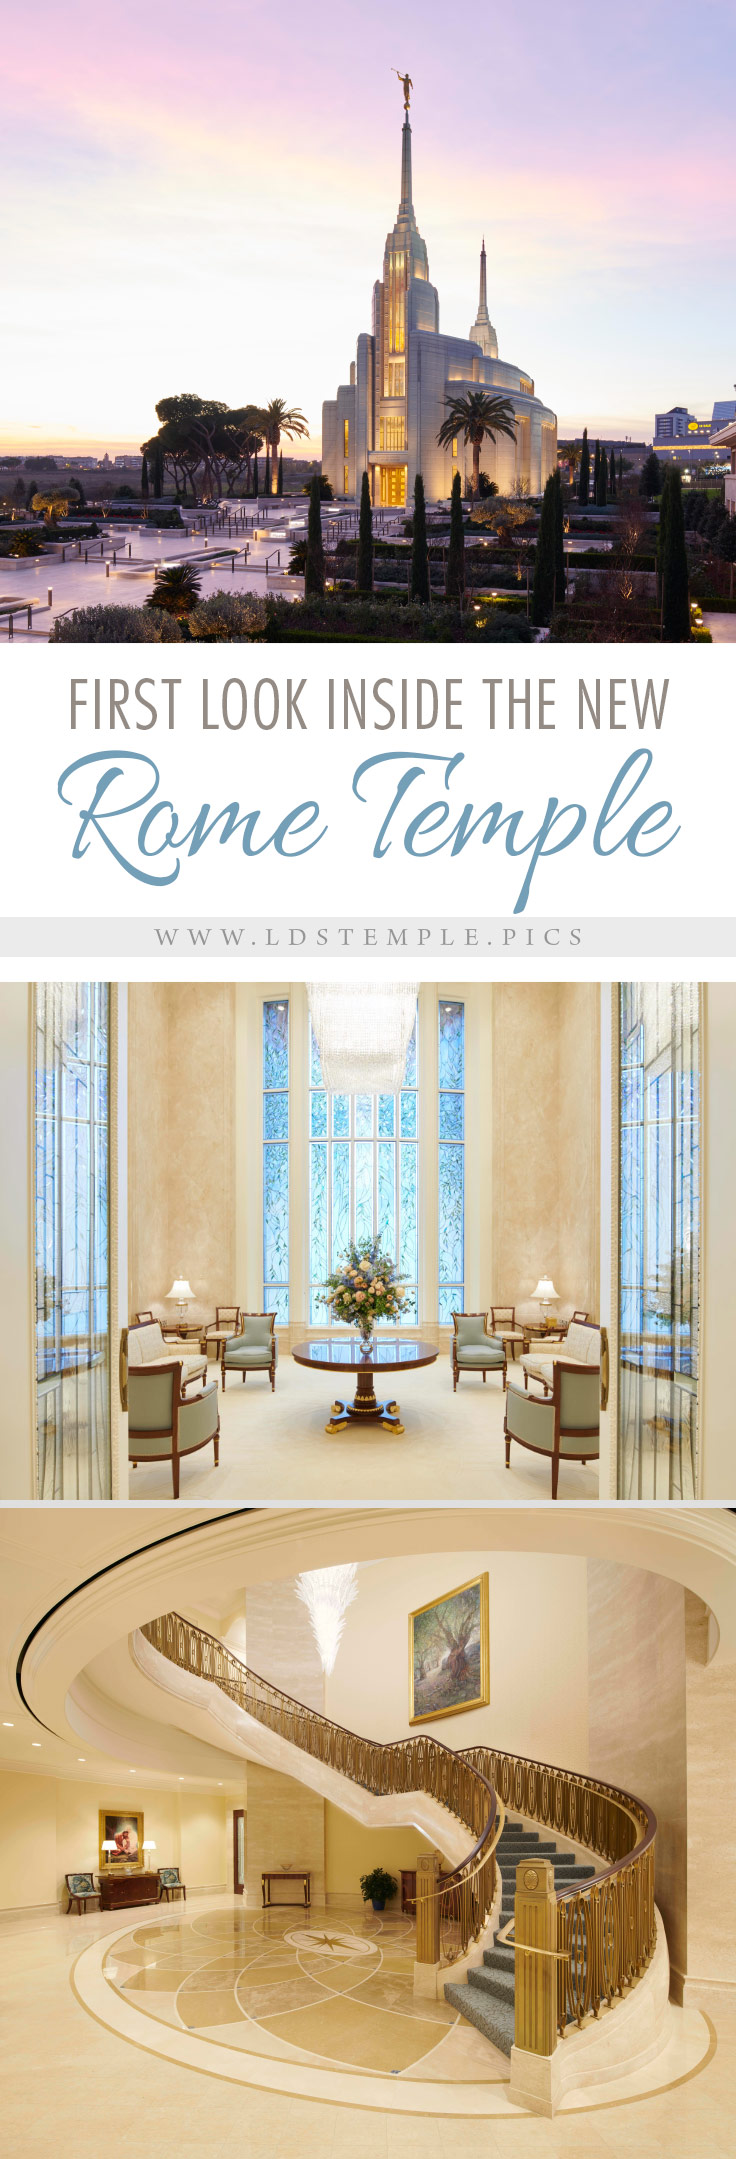 Pictures Inside the Beautiful New Rome Italy Temple | Now that the new Rome Italy Temple is finished, the Church has released pictures of the interior, and the temple is stunning, exquisite and magnificent!